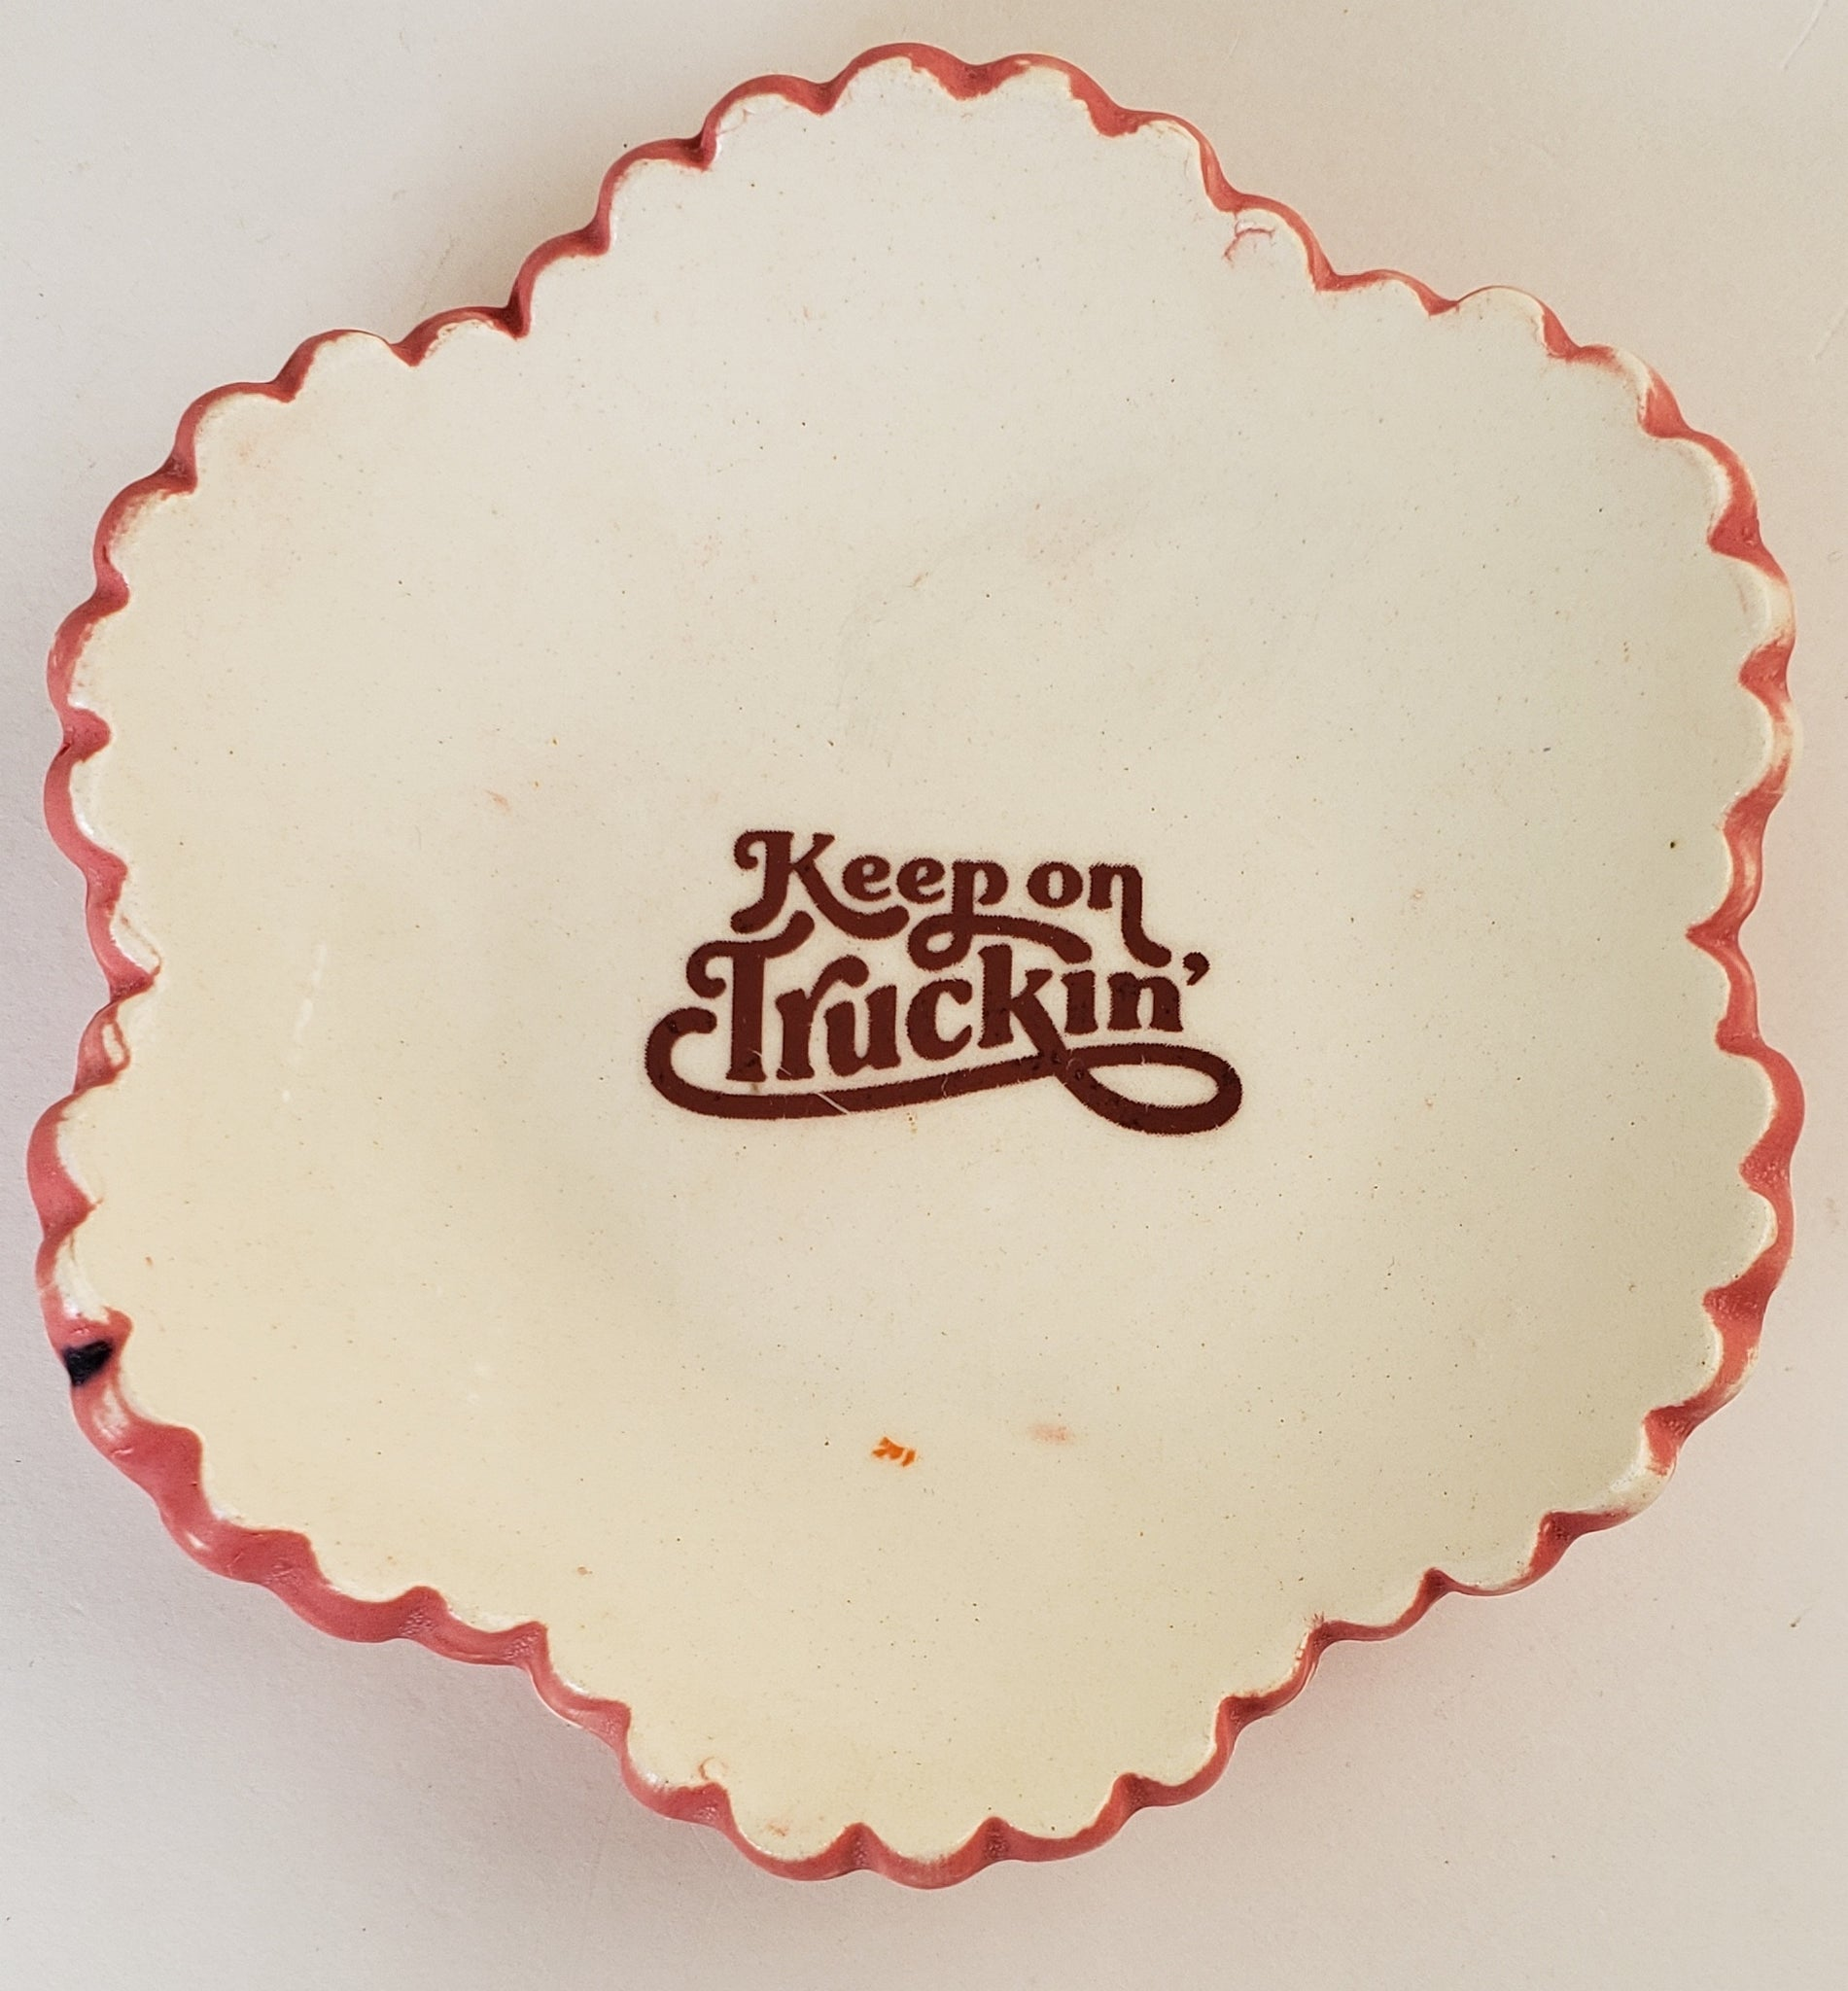 Tiny Plate with Keep on Truckin'